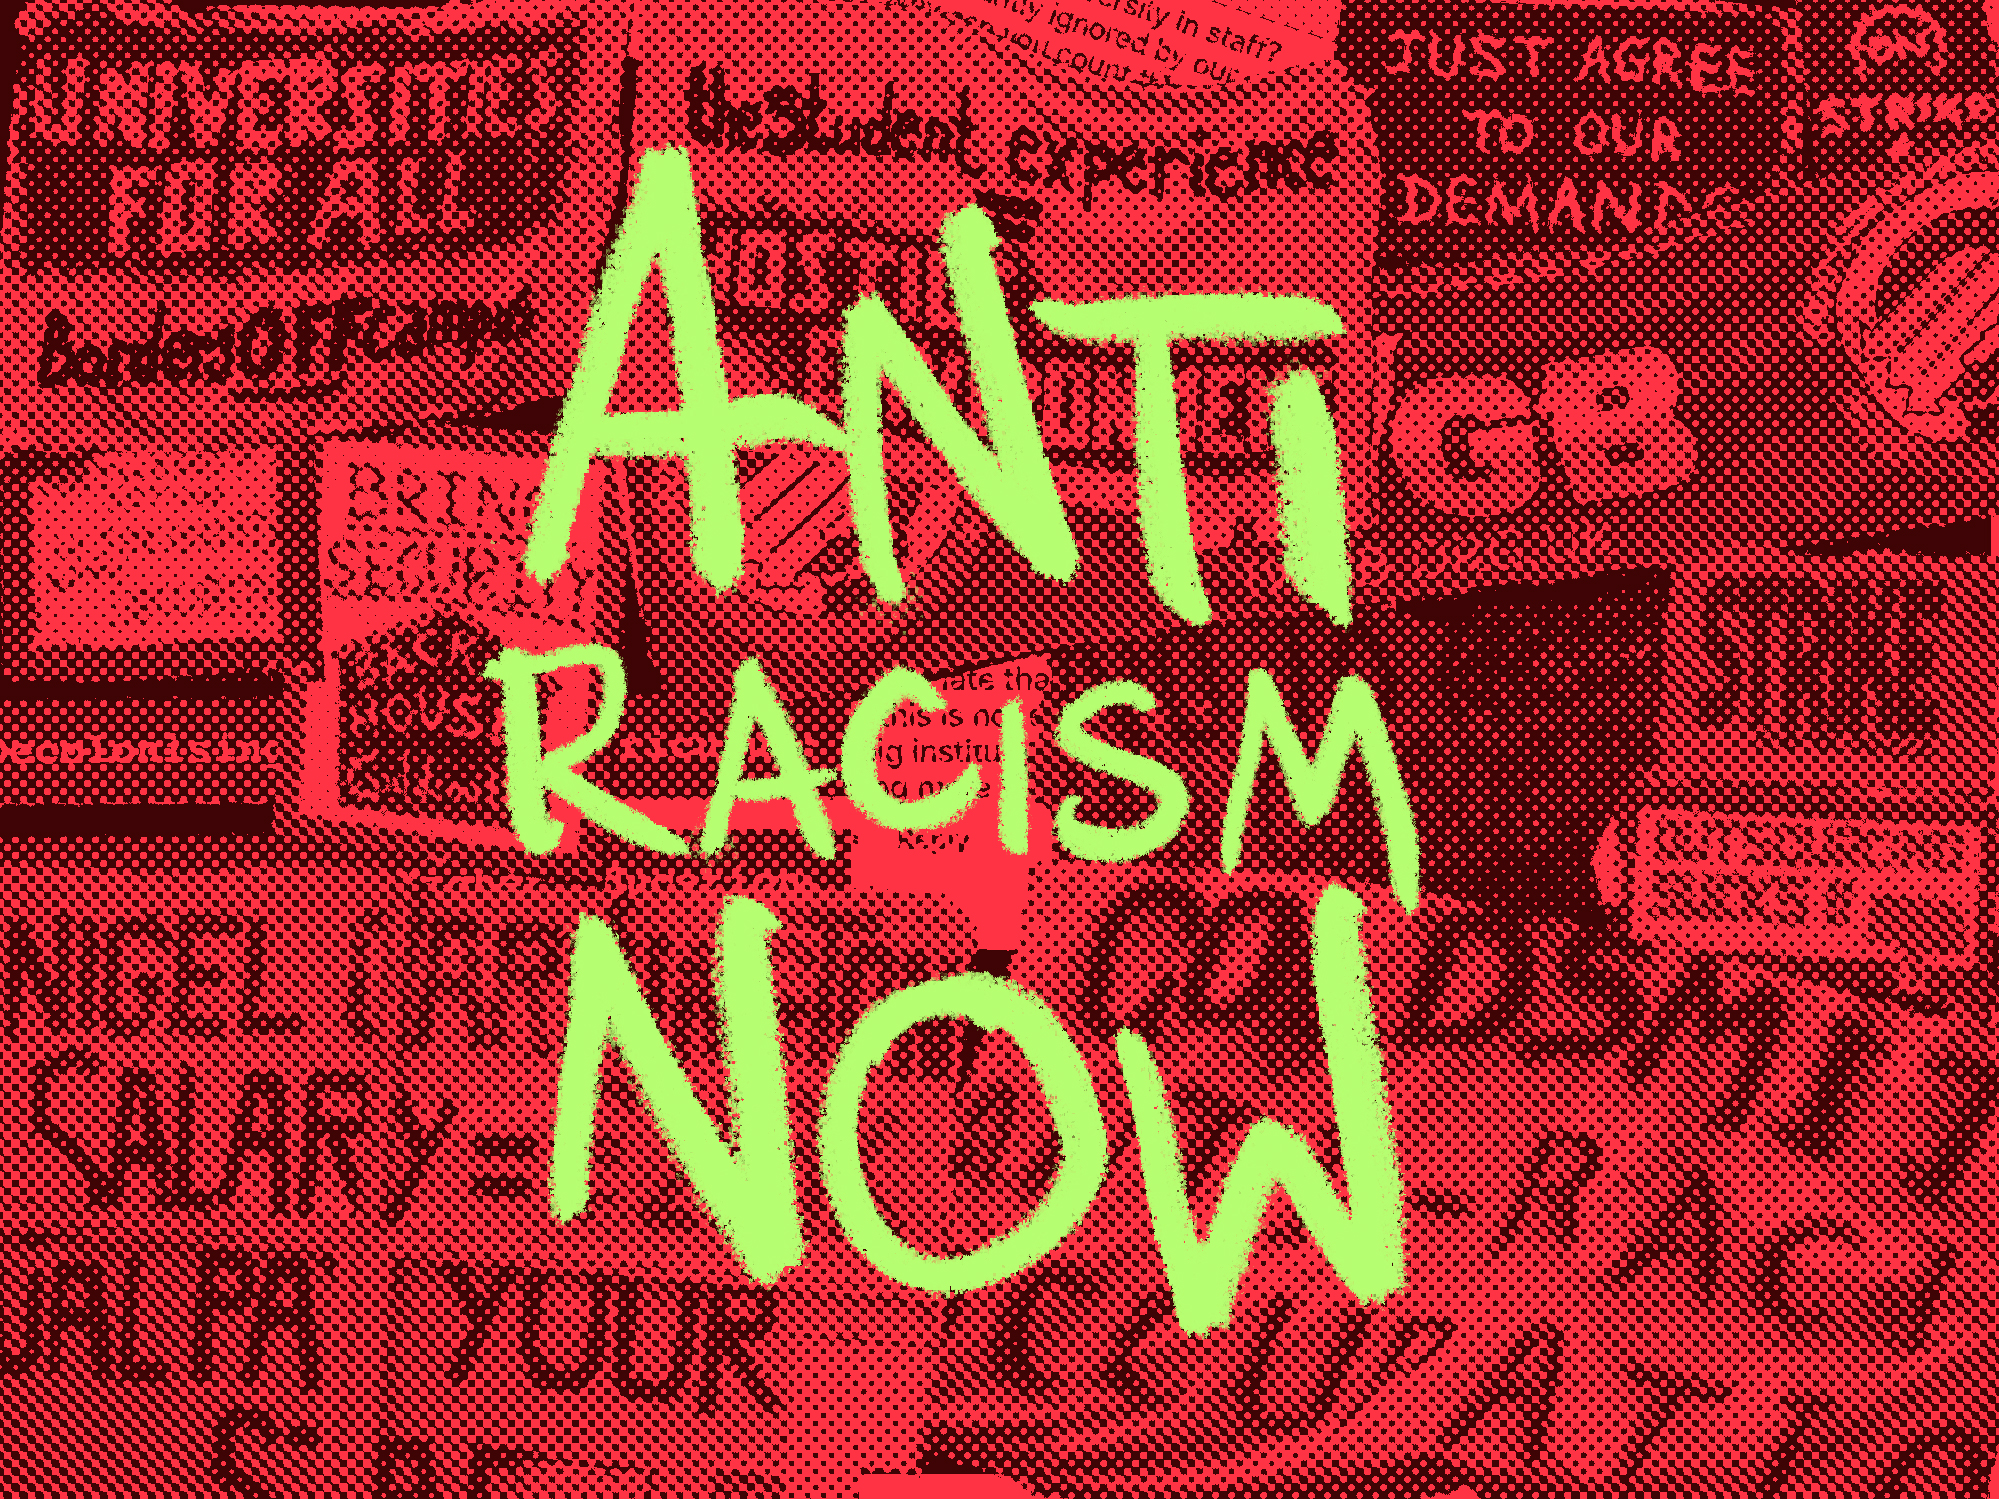 On a collage of red protest banners, neon green graffiti reads 'anti racism now'